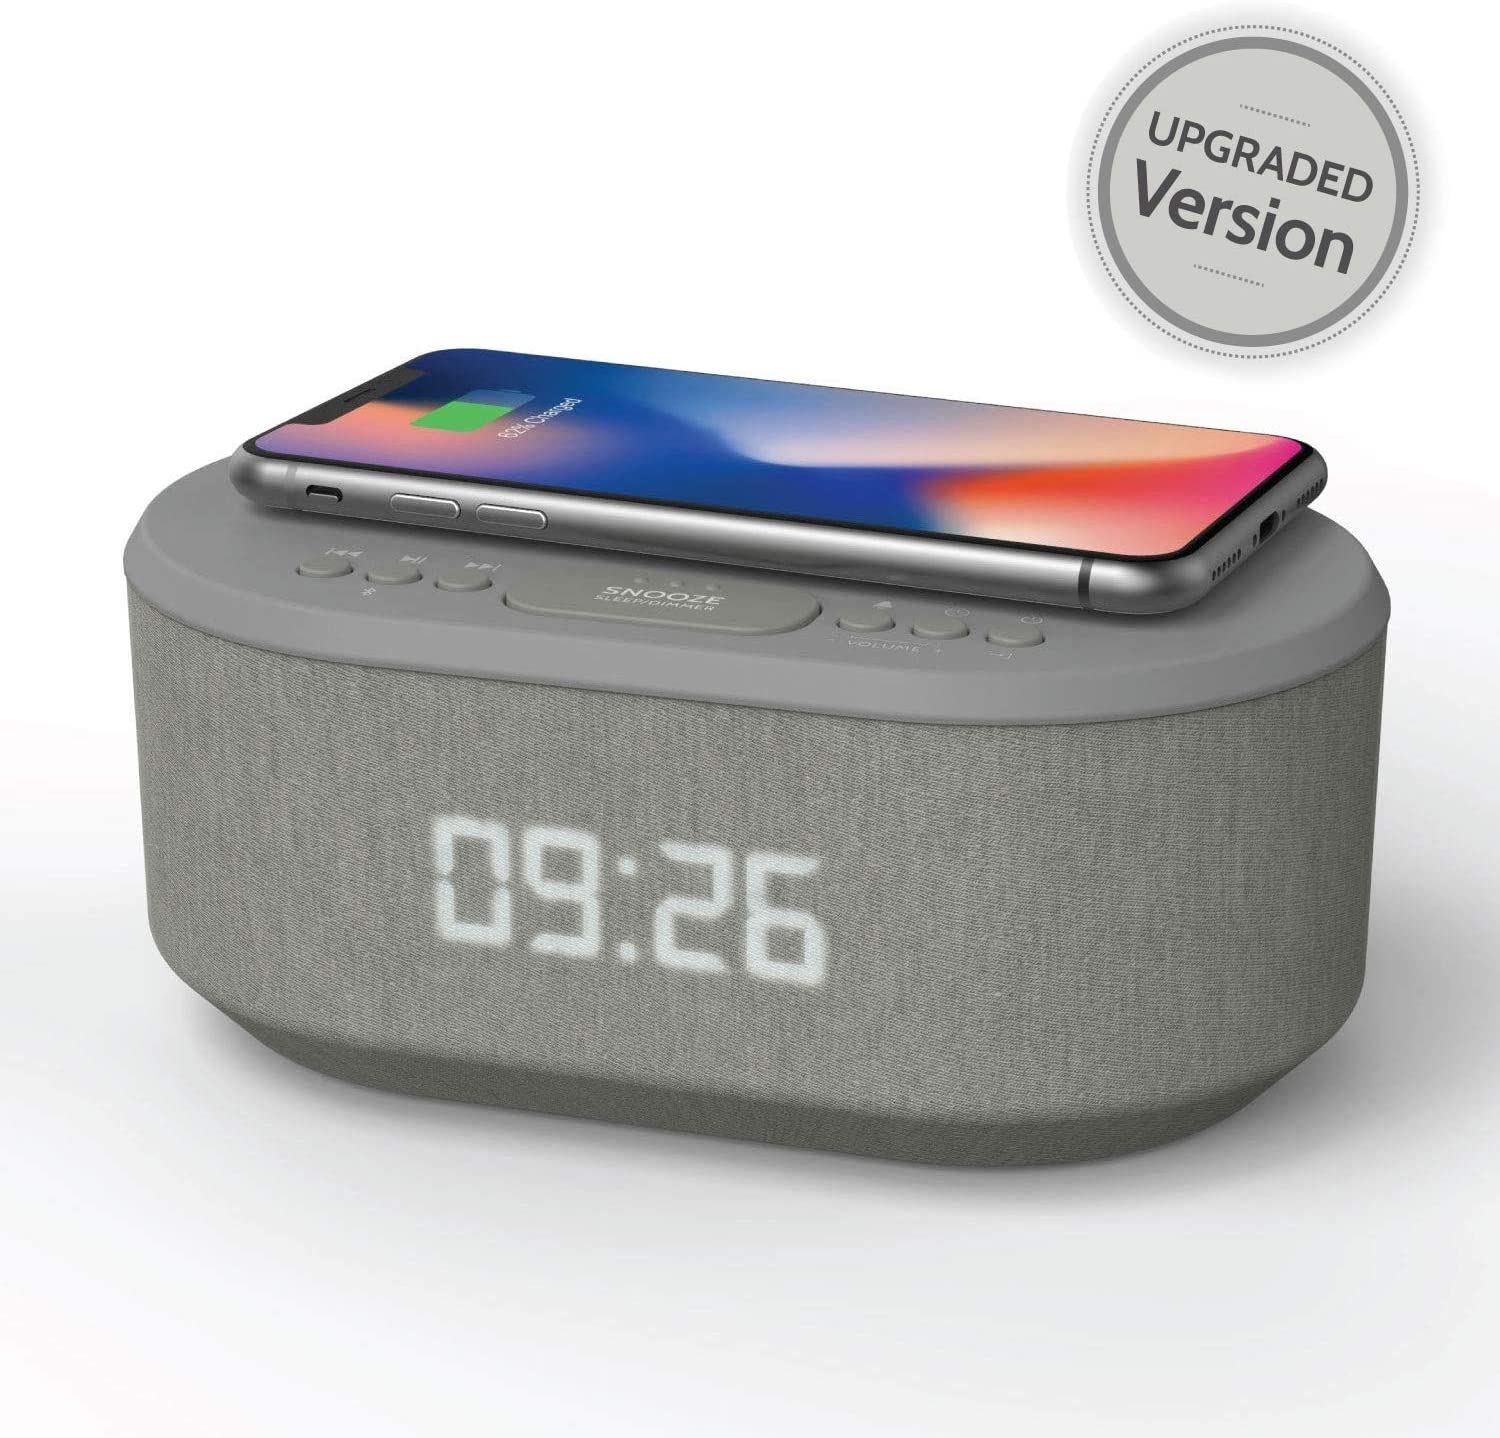 Bedside Radio Alarm Clock with USB Charger, Bluetooth Speaker, QI Wireless Charging, Dual Alarm Dimmable LED Display (Grey)